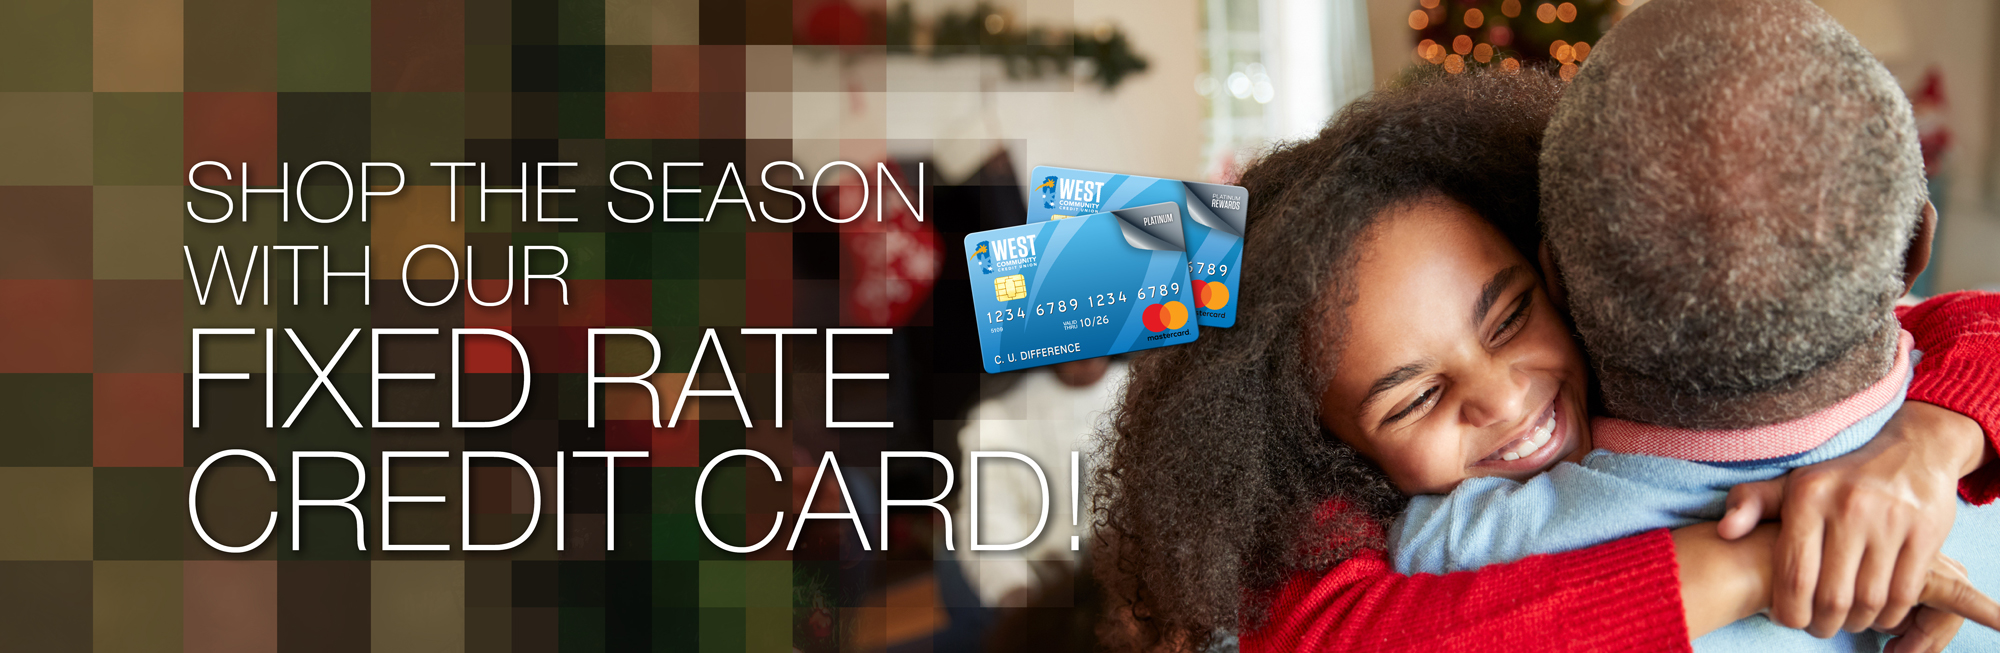 Shop the season with our Fixed Rate Credit Cards!